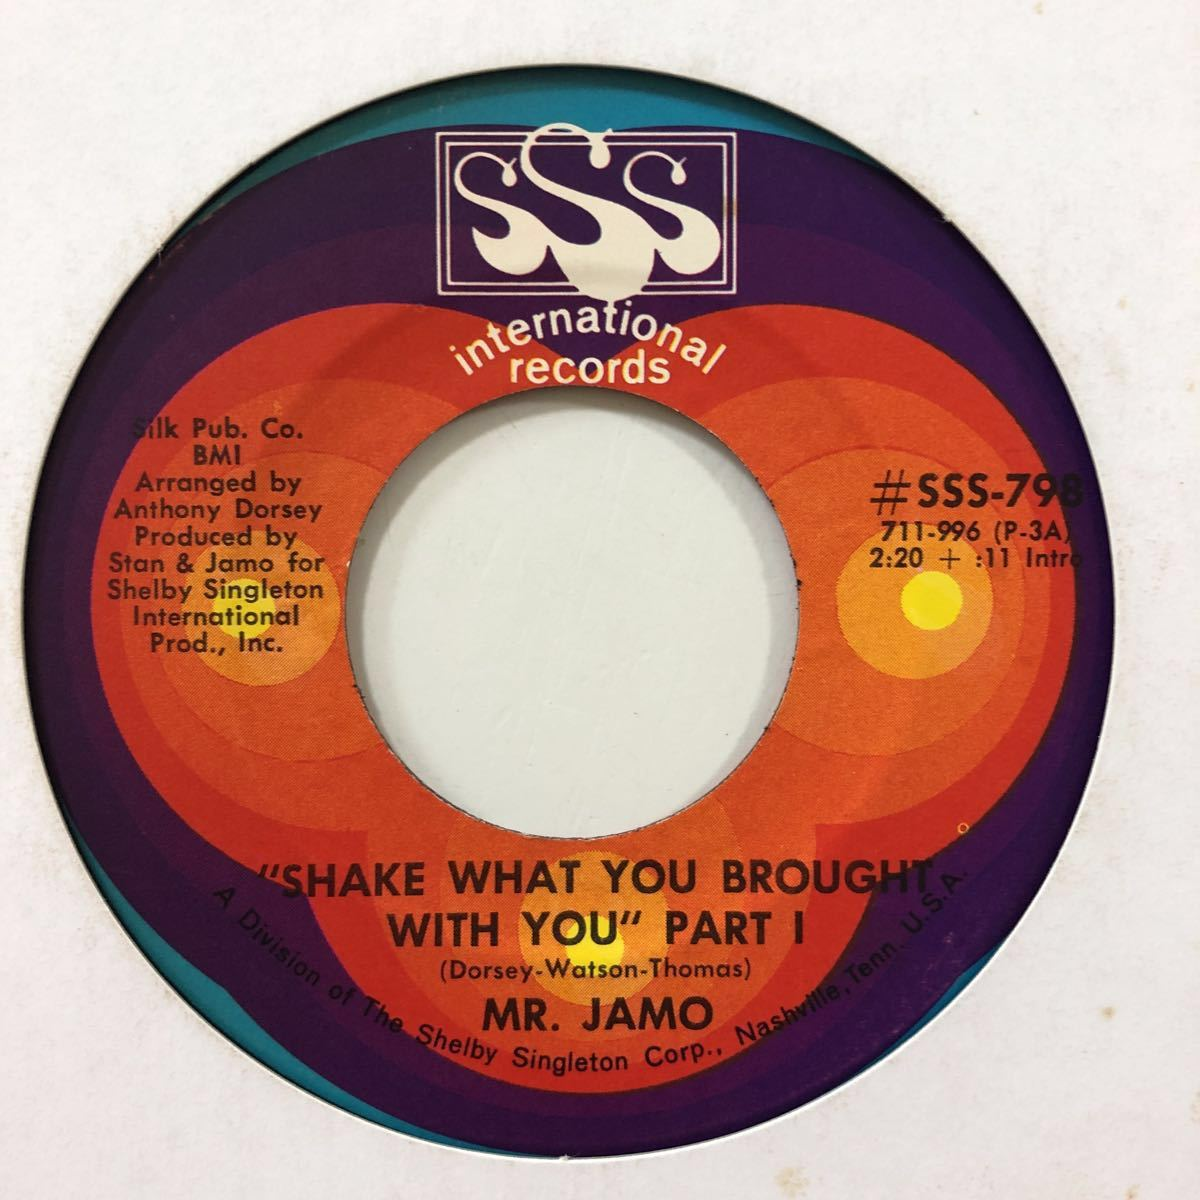 【EPレコード】US盤 オリジナル MR. JAMO / SHAKE WHAT YOU BROUGHT WITH YOU PART Ⅰ Ⅱ FUNK45